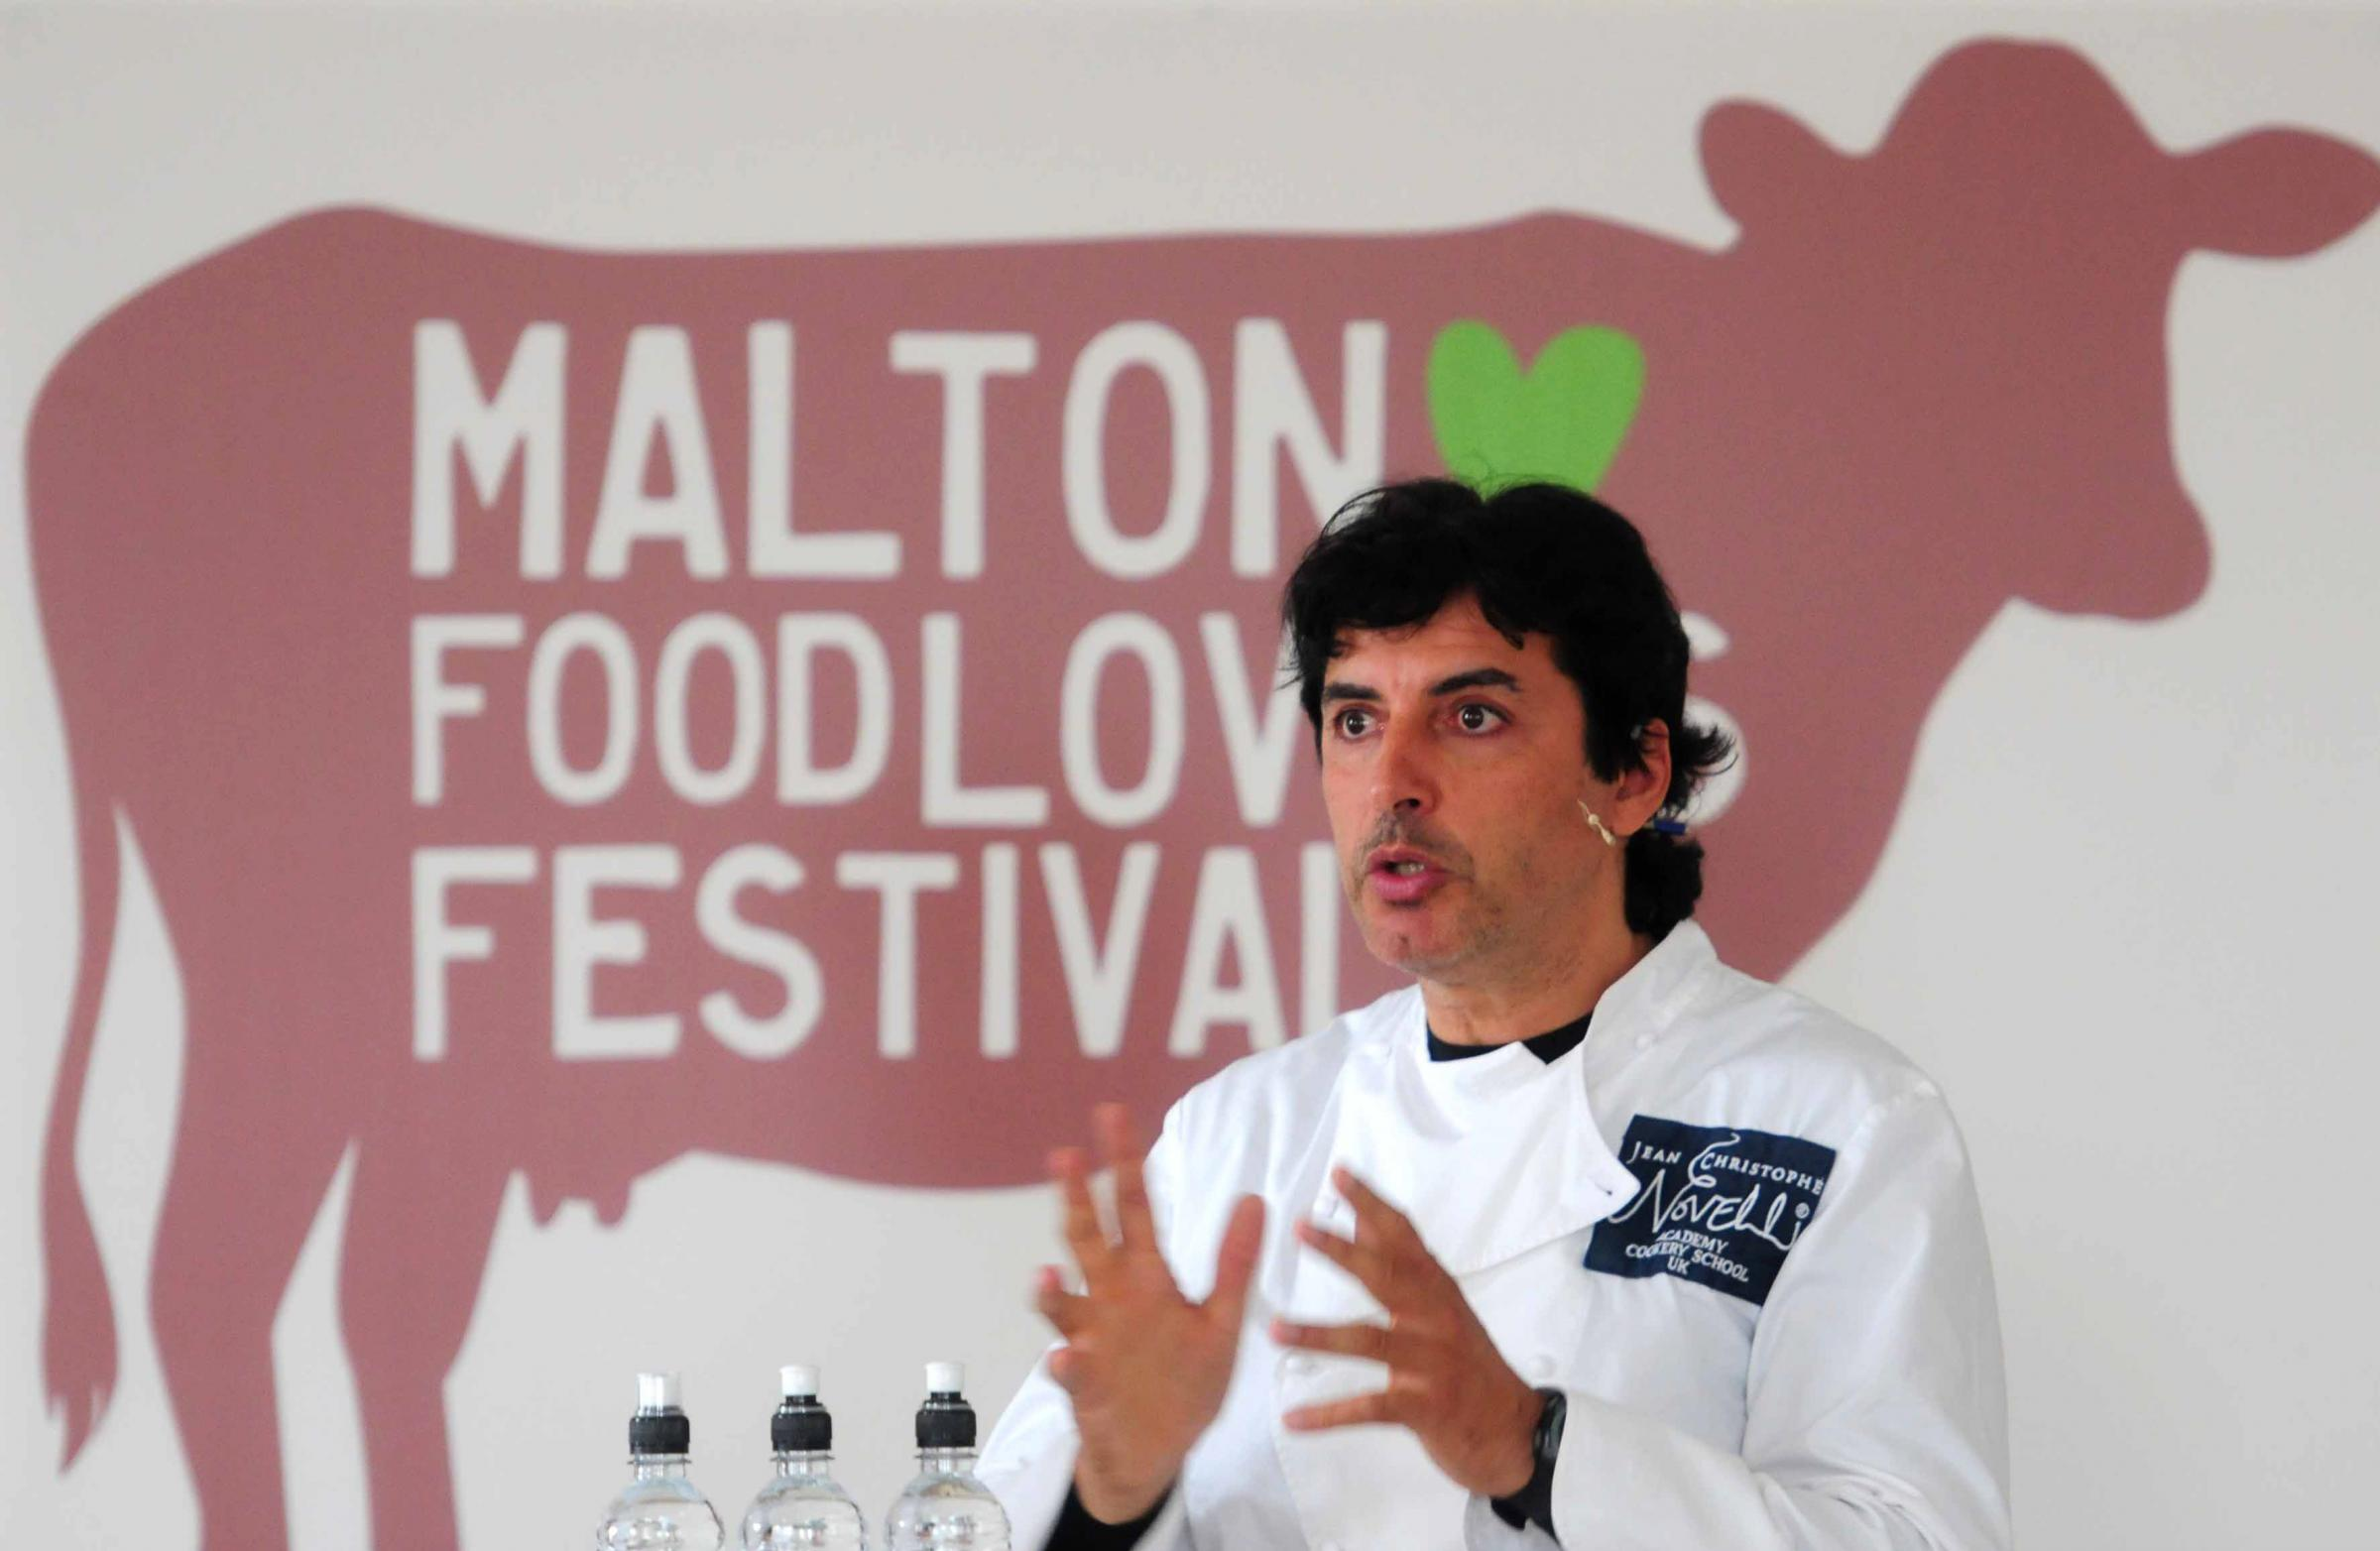 Yorkshire producers out in force at Malton's annual food festival